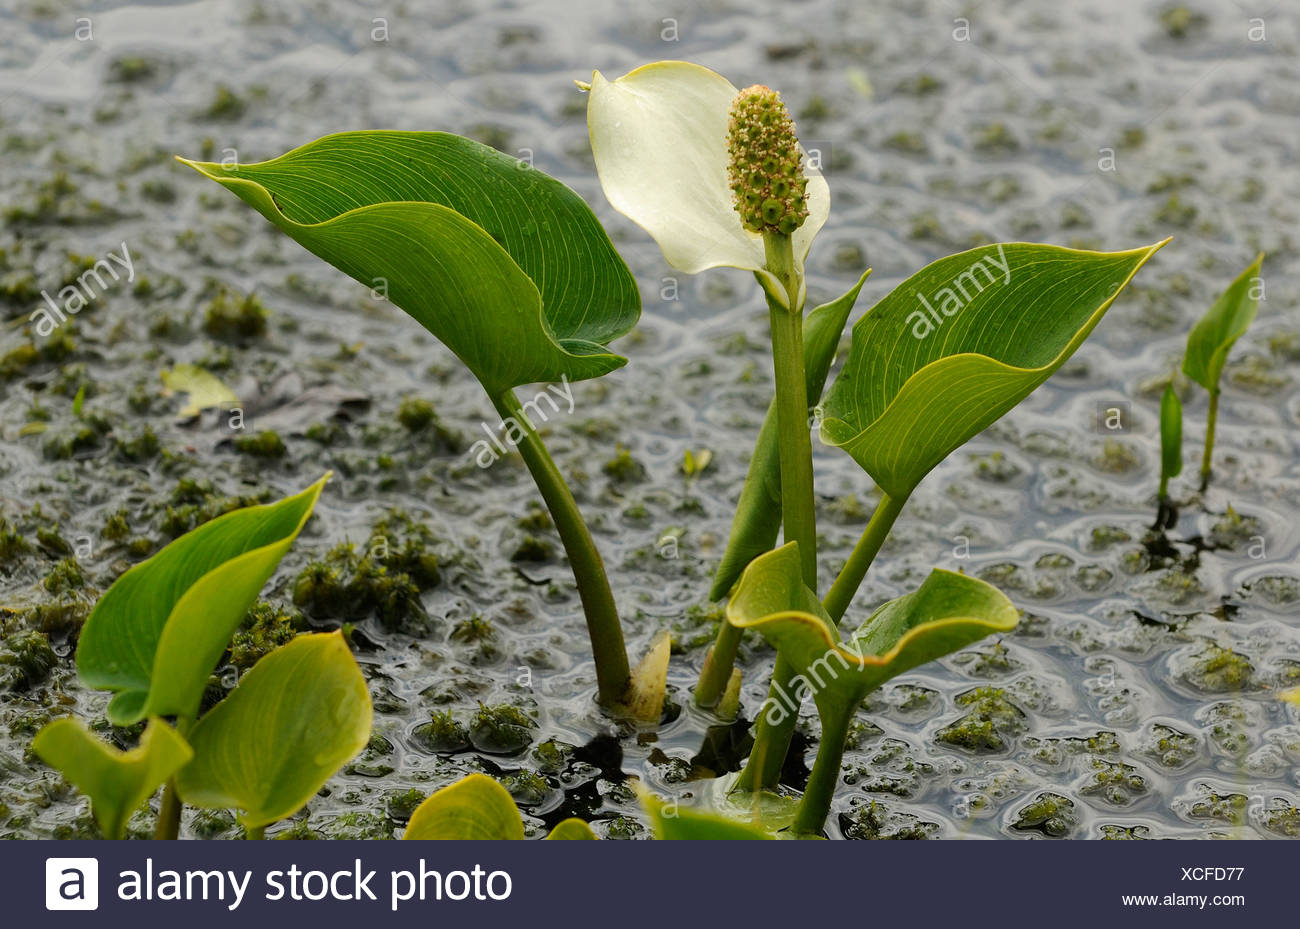 bog arum, wild calla (Calla palustris), blooming at mire border, Germany, Lower Saxony, NSG Grosses Torfmoor - Stock Image